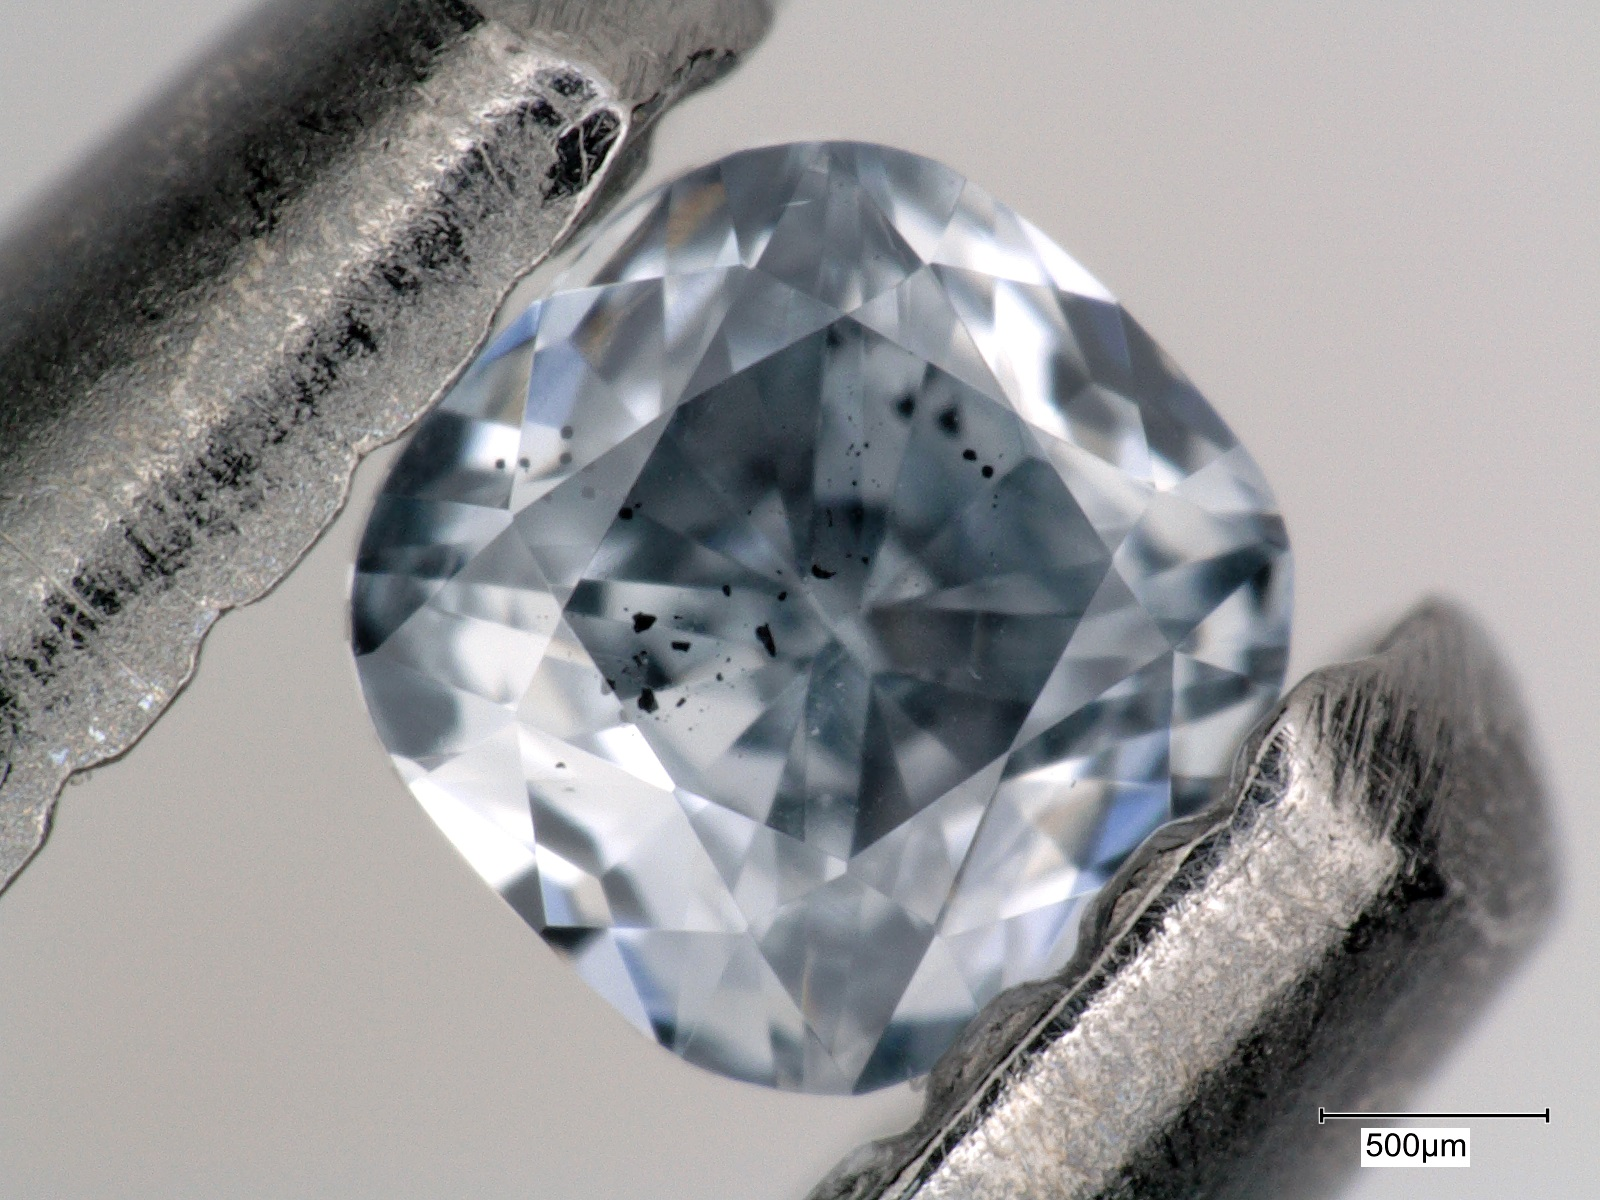 Scientists have found that blue diamonds formed up to four times deeper in the Earth's mantle than most other diamonds.